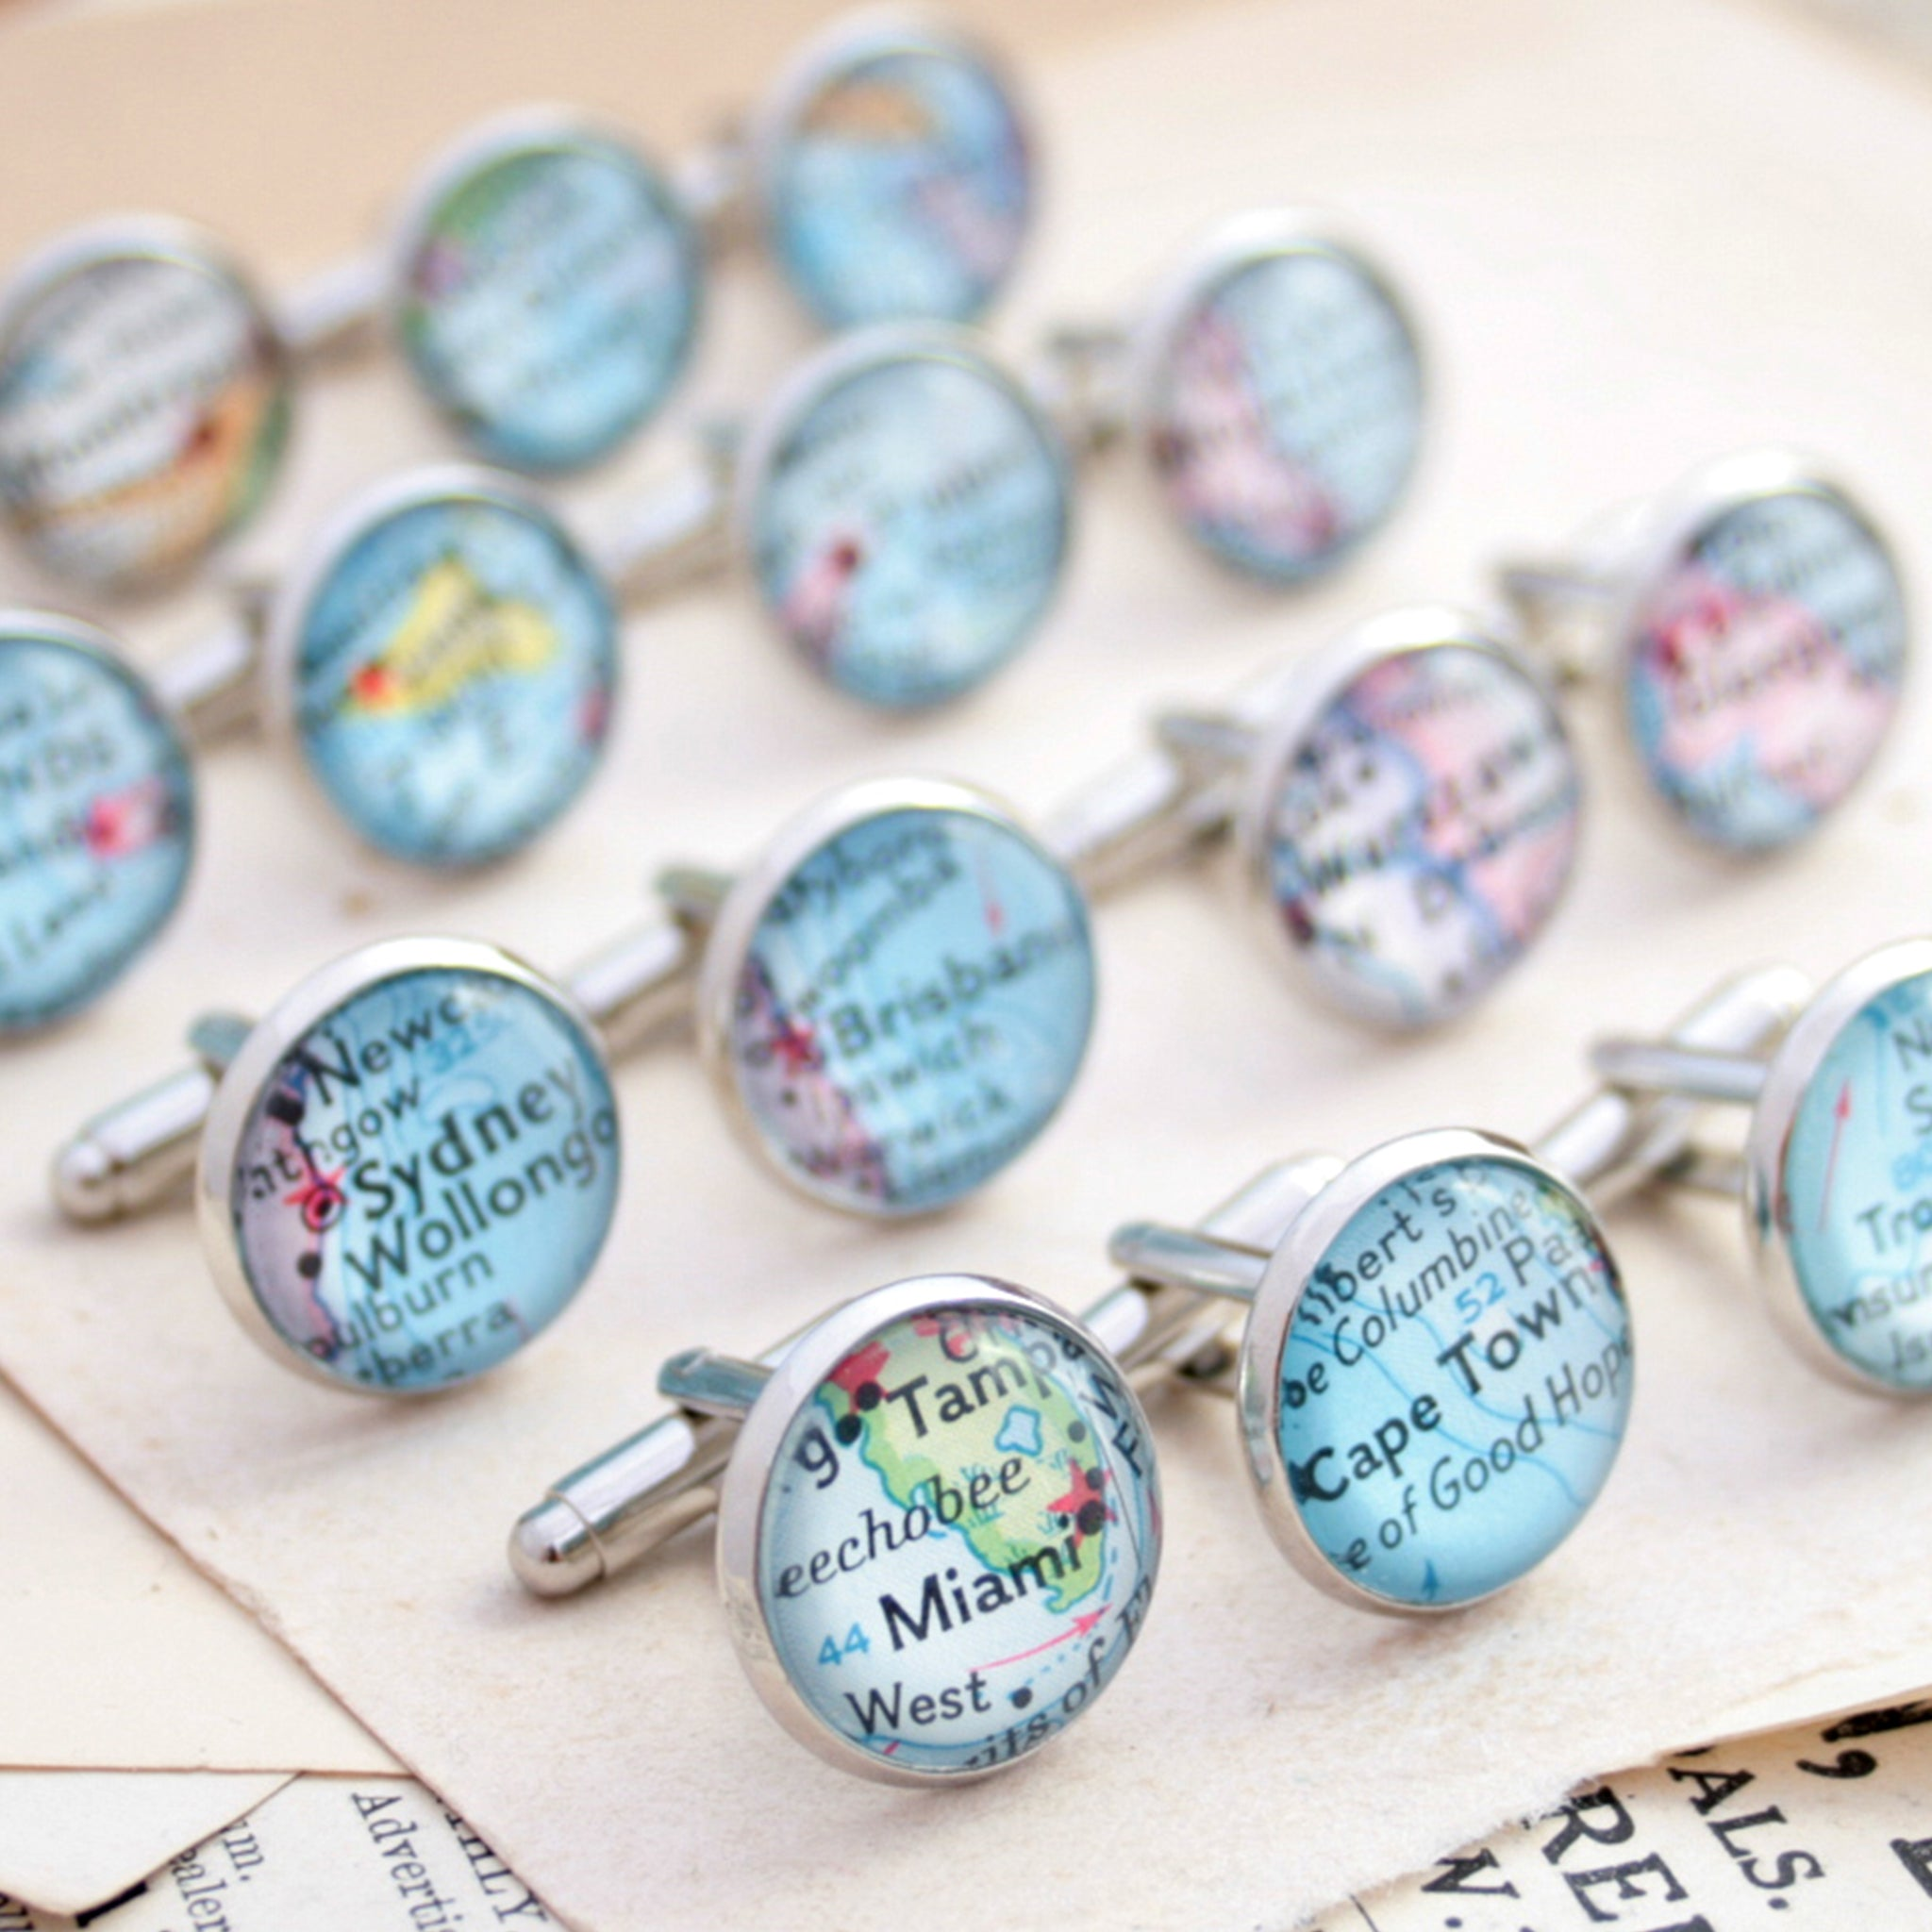 Personalised map cufflinks in silver tone featuring custom maps